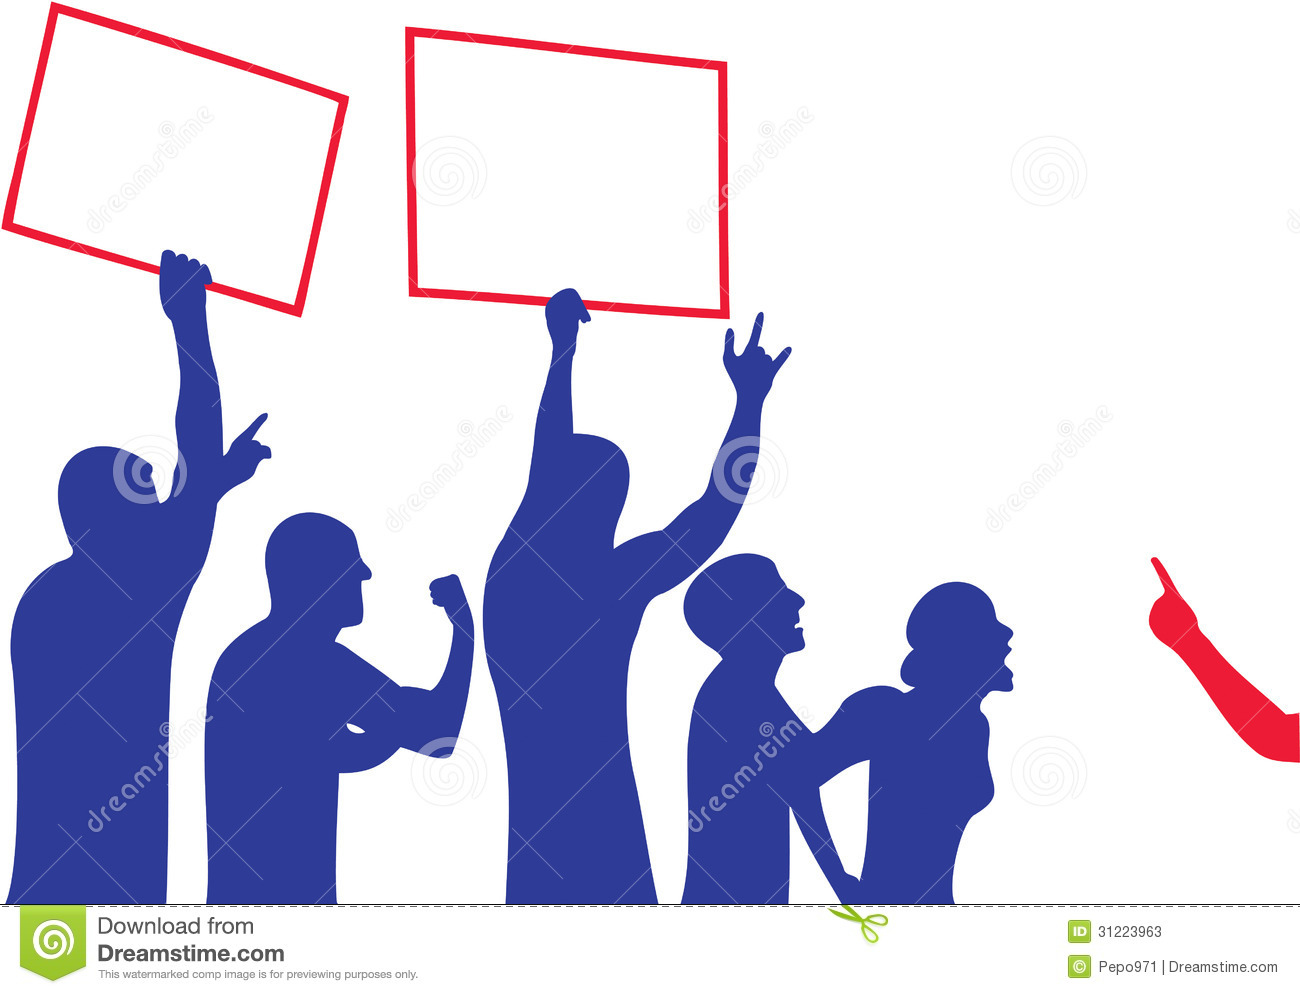 Time For Civil Disobedience >> Protest stock vector. Illustration of policies, actions - 31223963